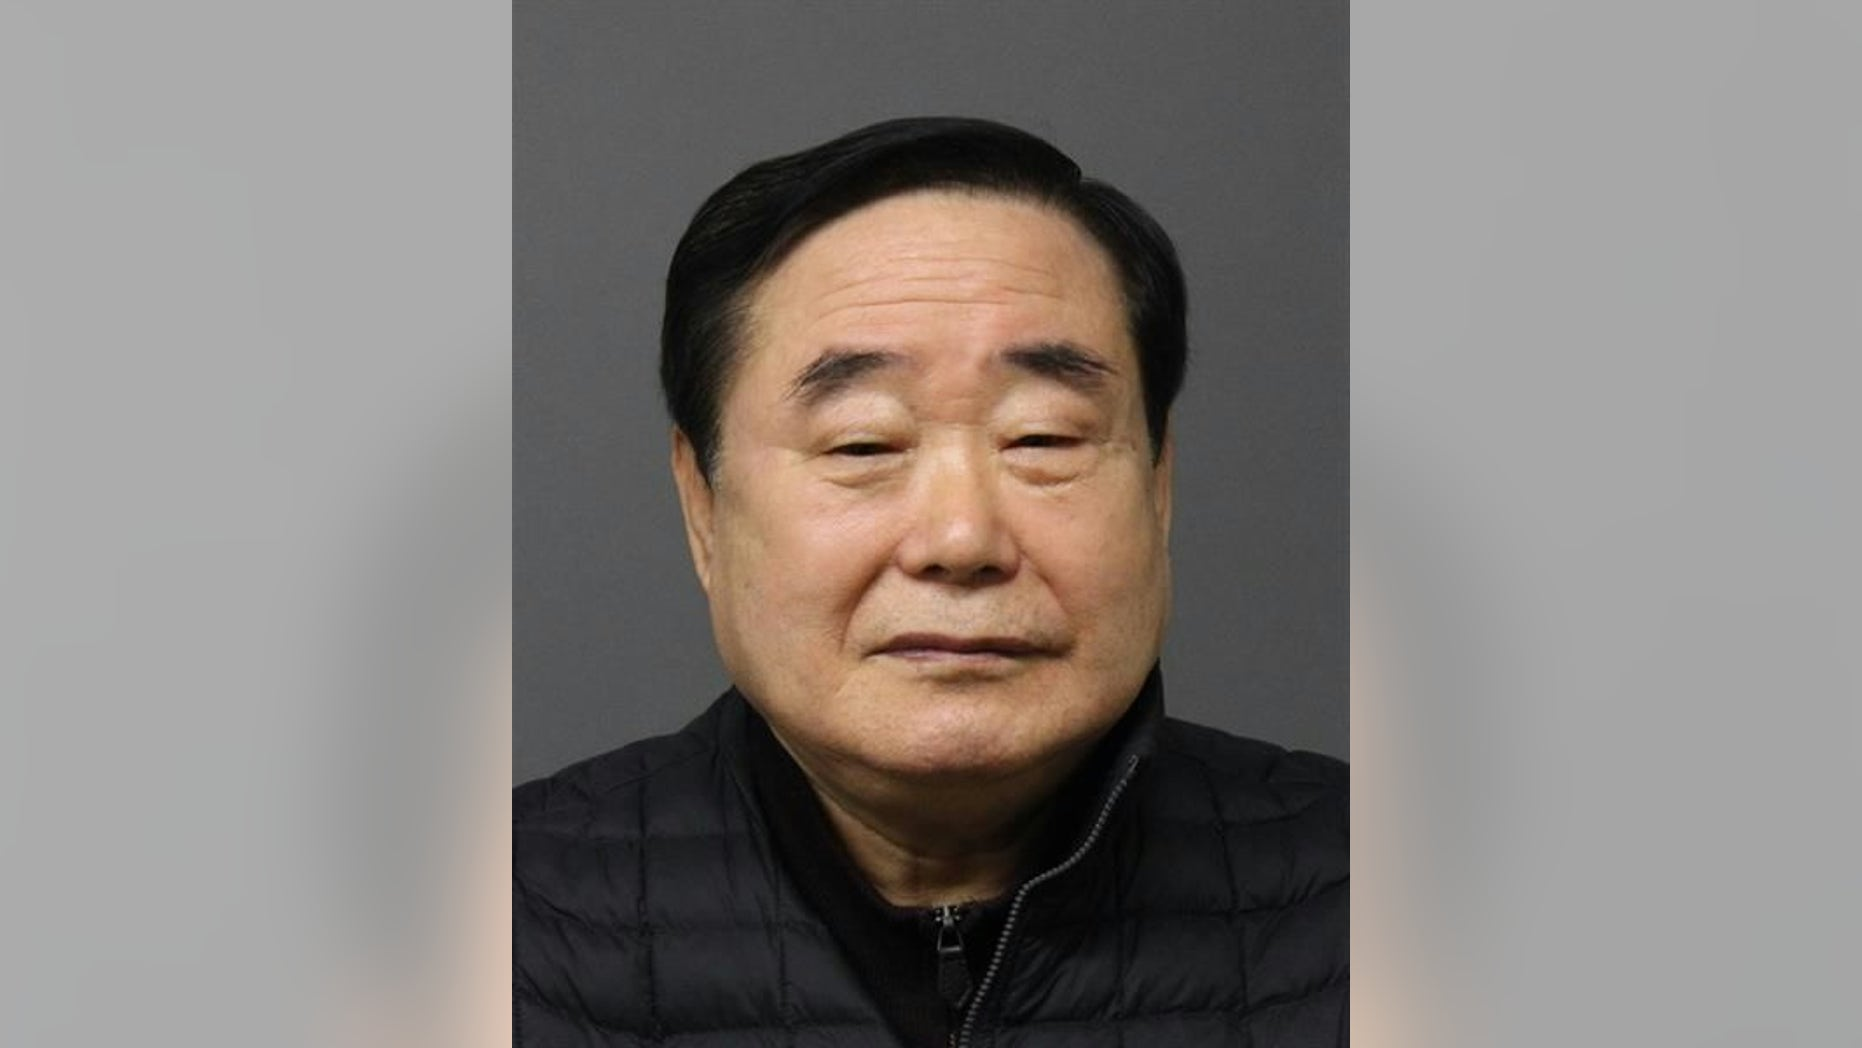 Young Hwan Choi, 72, was recently arrested on aggravated assault and unlicensed practice of medicine and surgery charges.